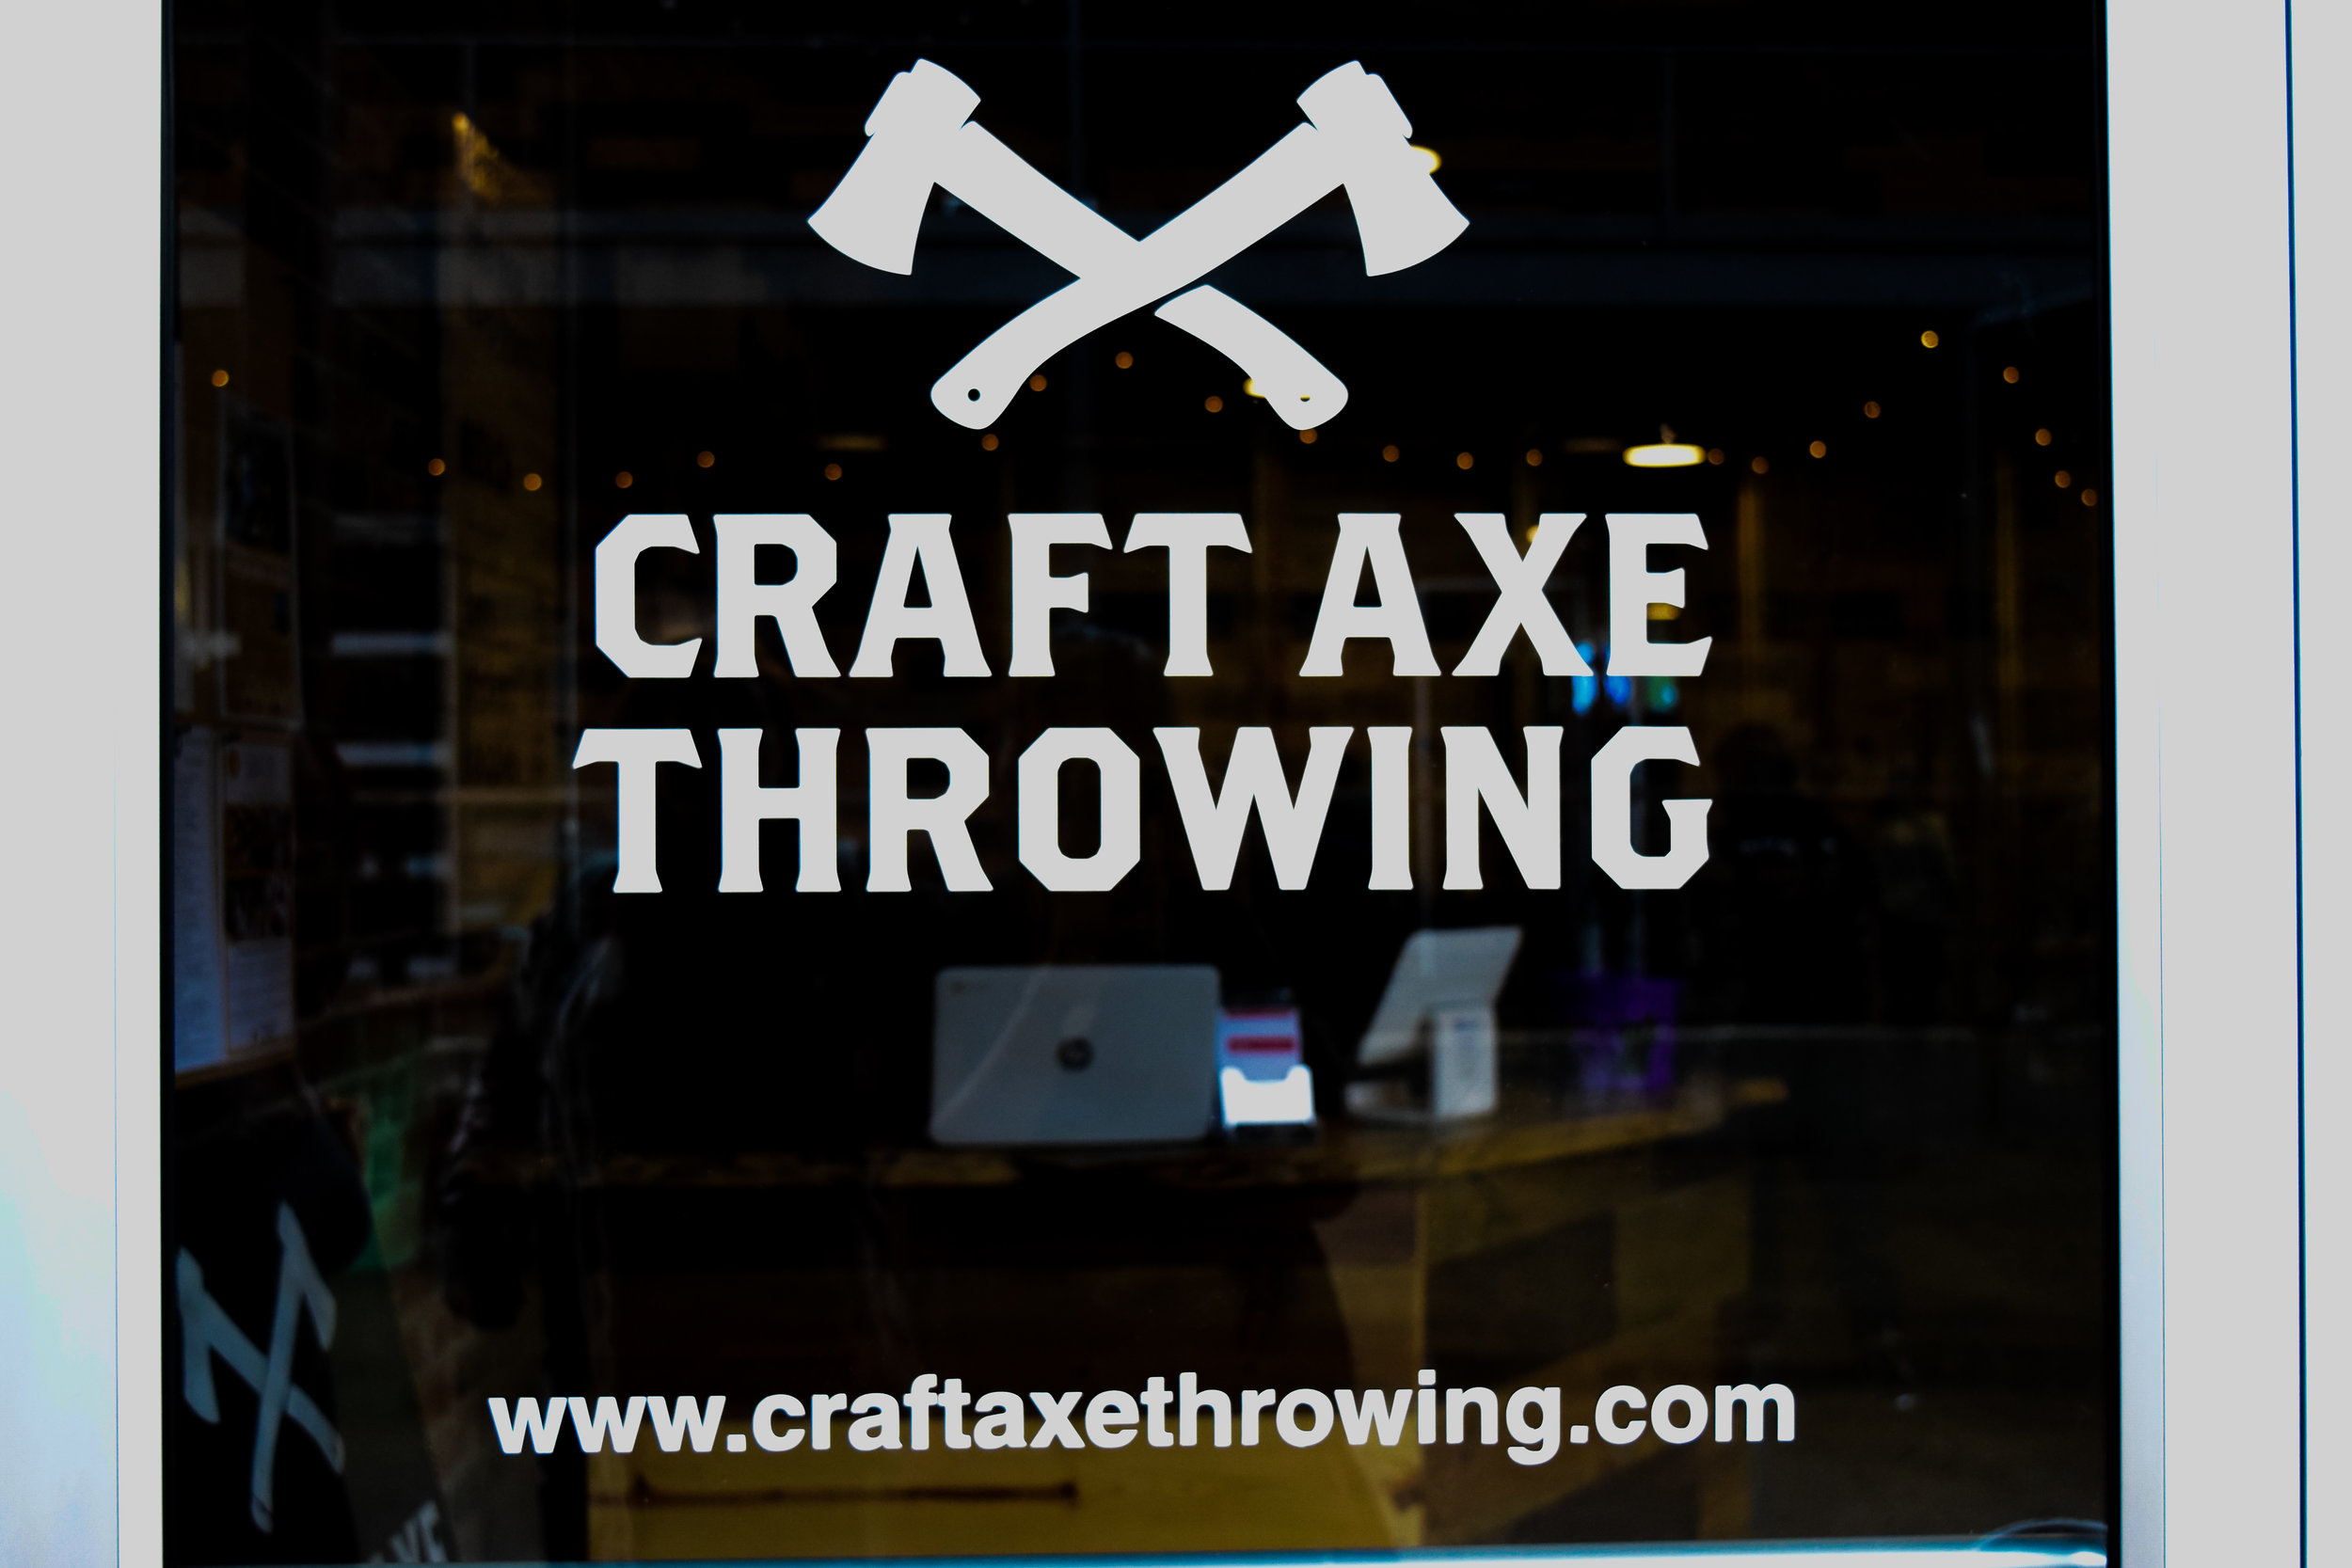 Front door of Craft Axe Throwing